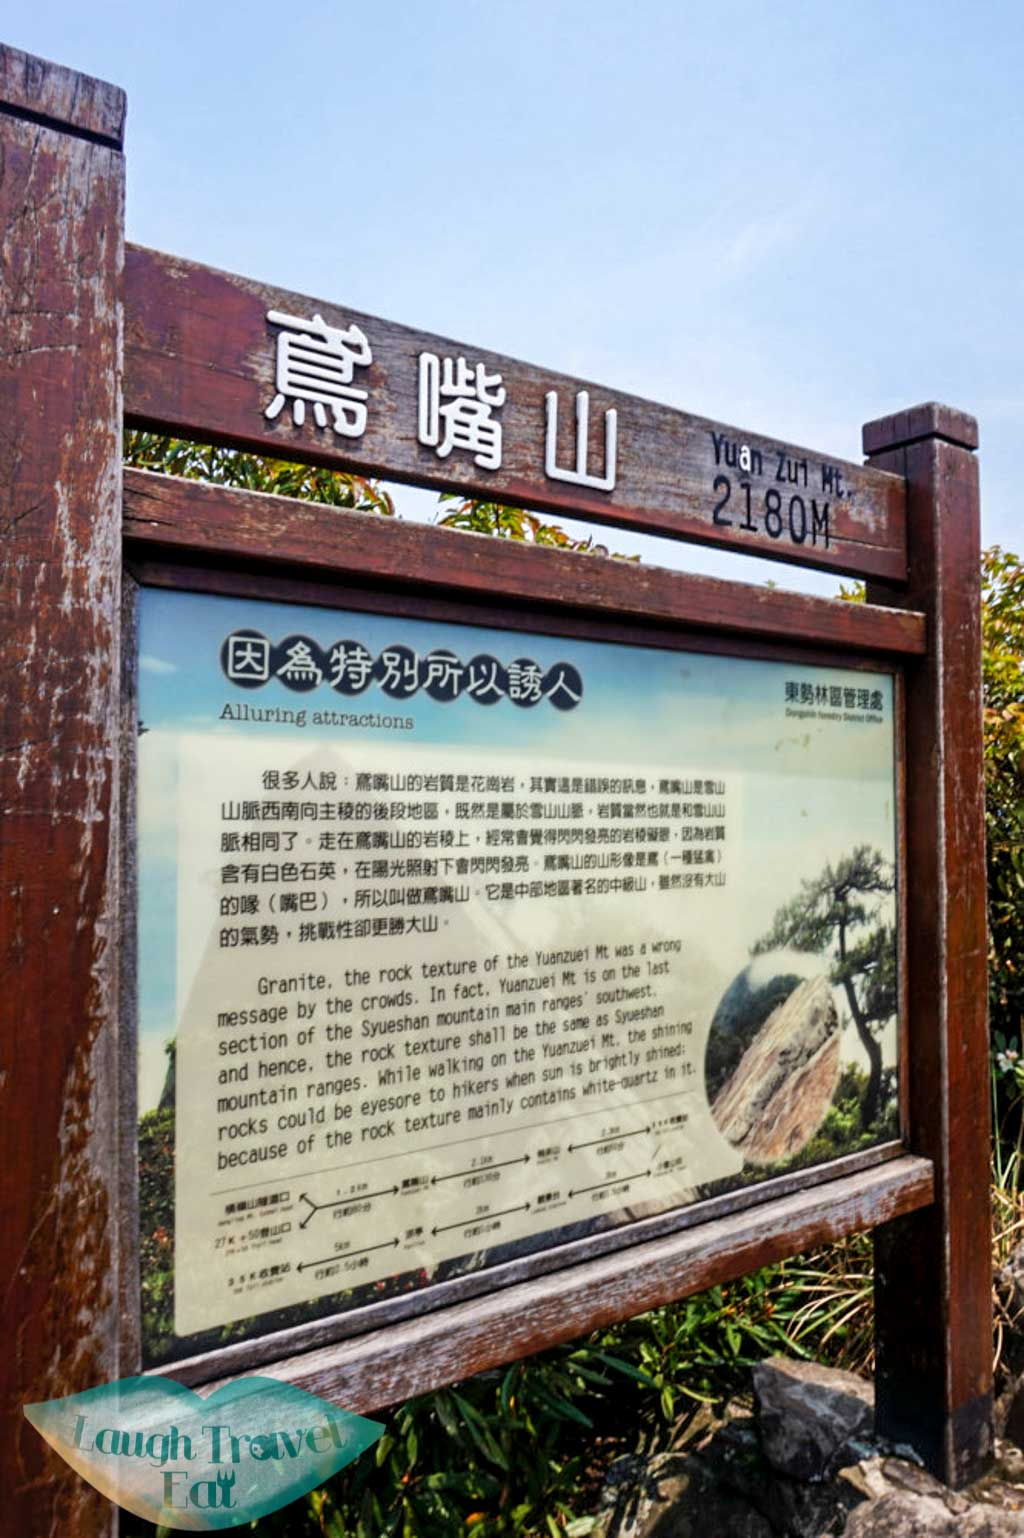 Notice board with information of Yuan Zui Mountain in Dasyueshan National Forest Recreational Area, Taichung - Laugh Travel Eat